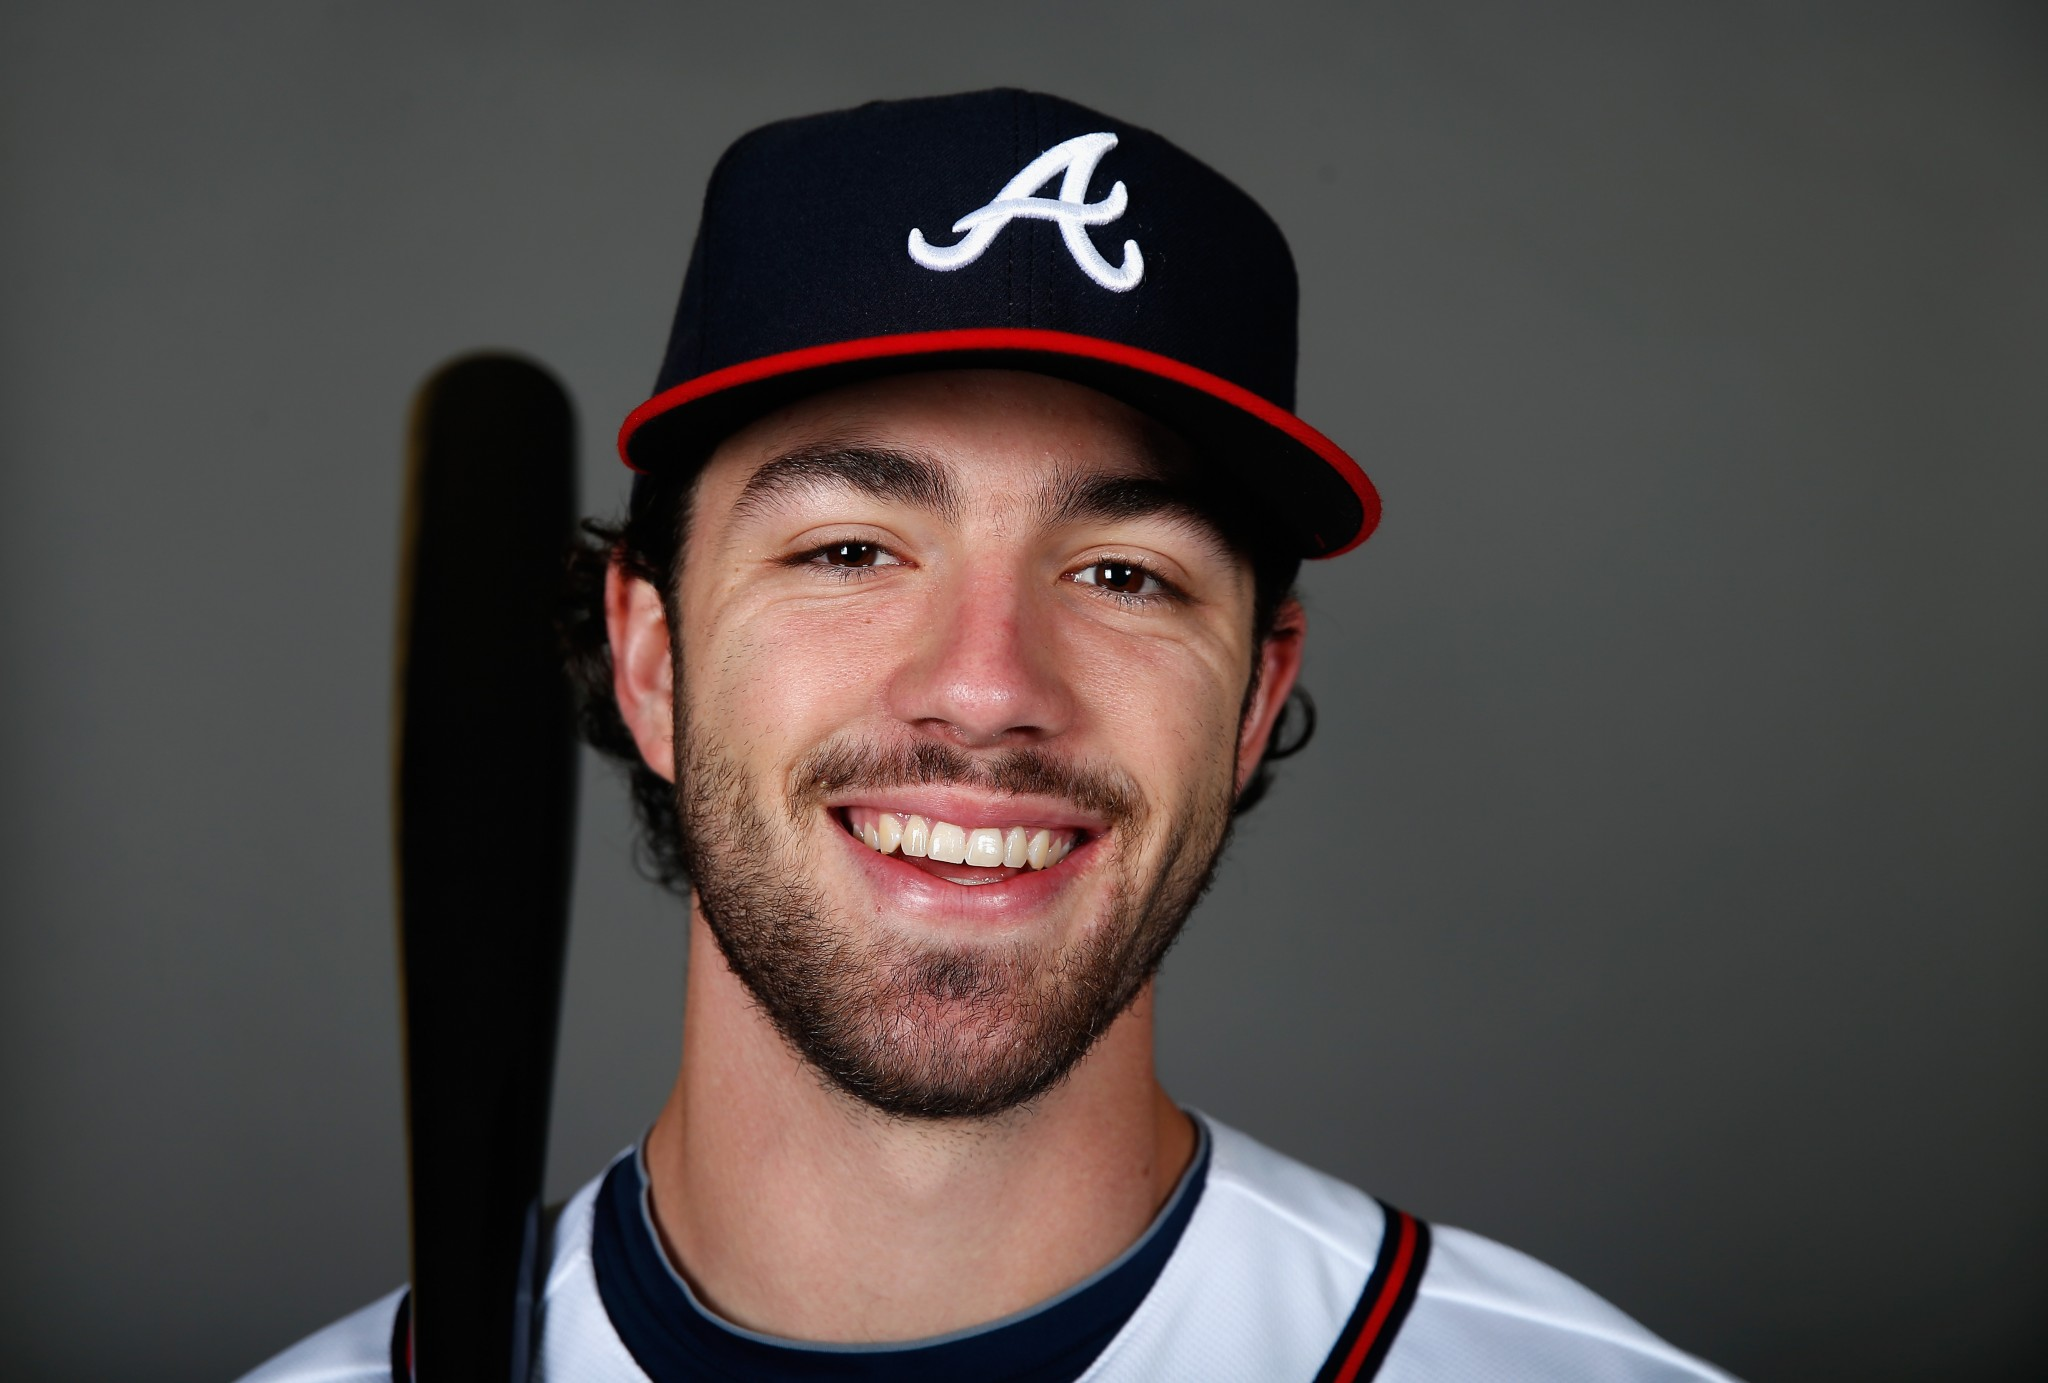 Dansby Swanson will join the Atlanta Braves on Wednesday. (AP)